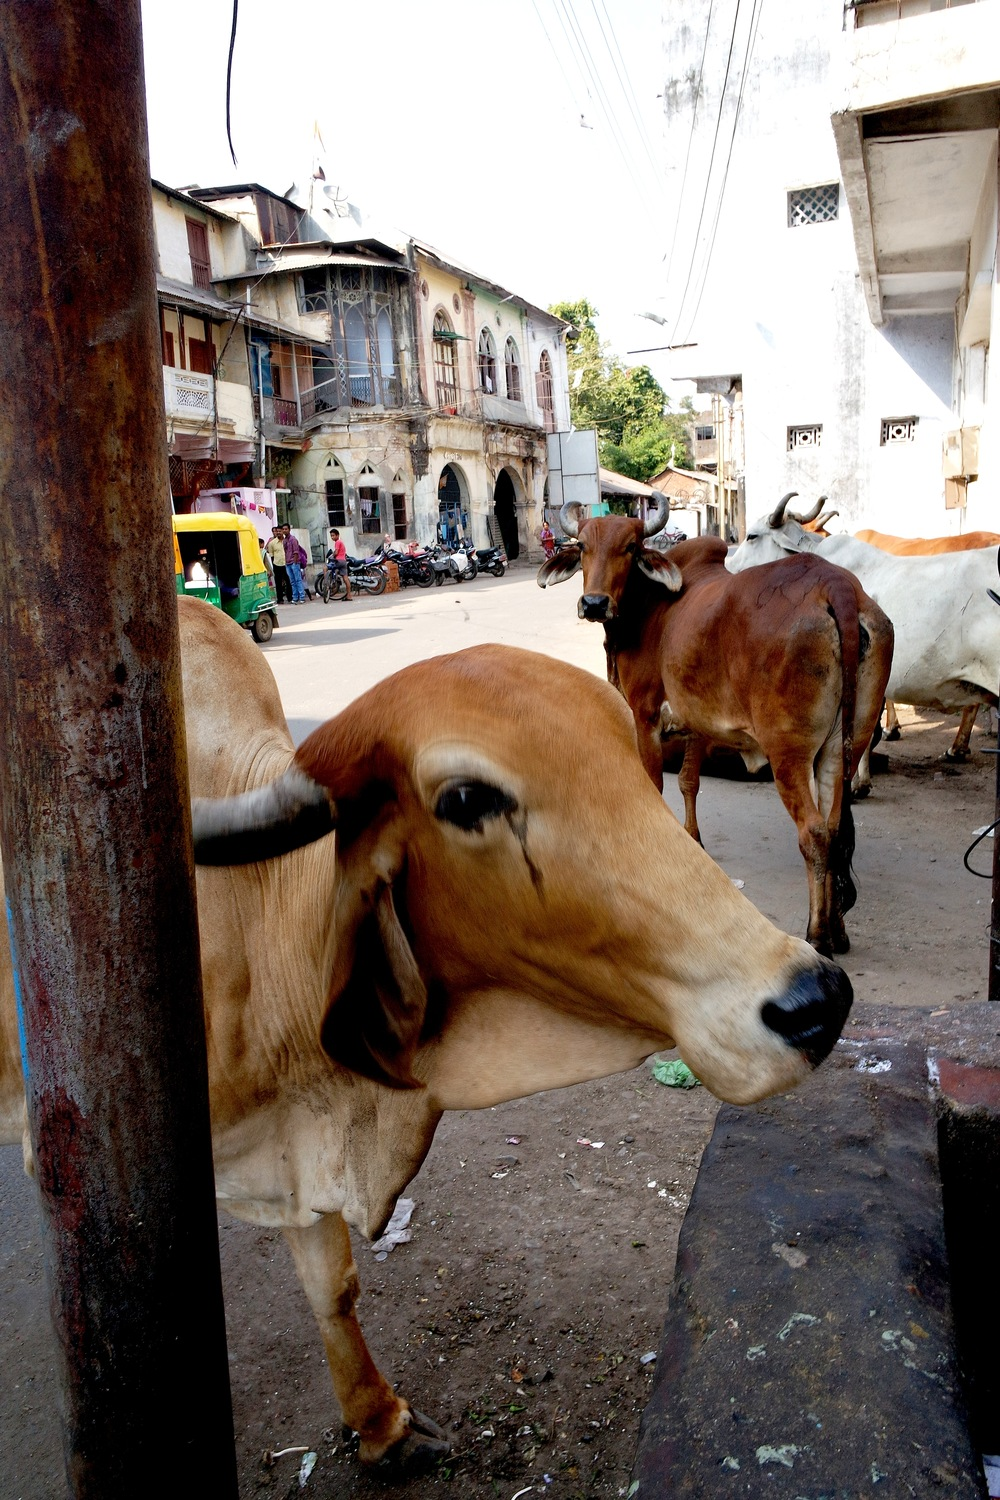 Cows like these have free rein in India, where they are revered by Hindus